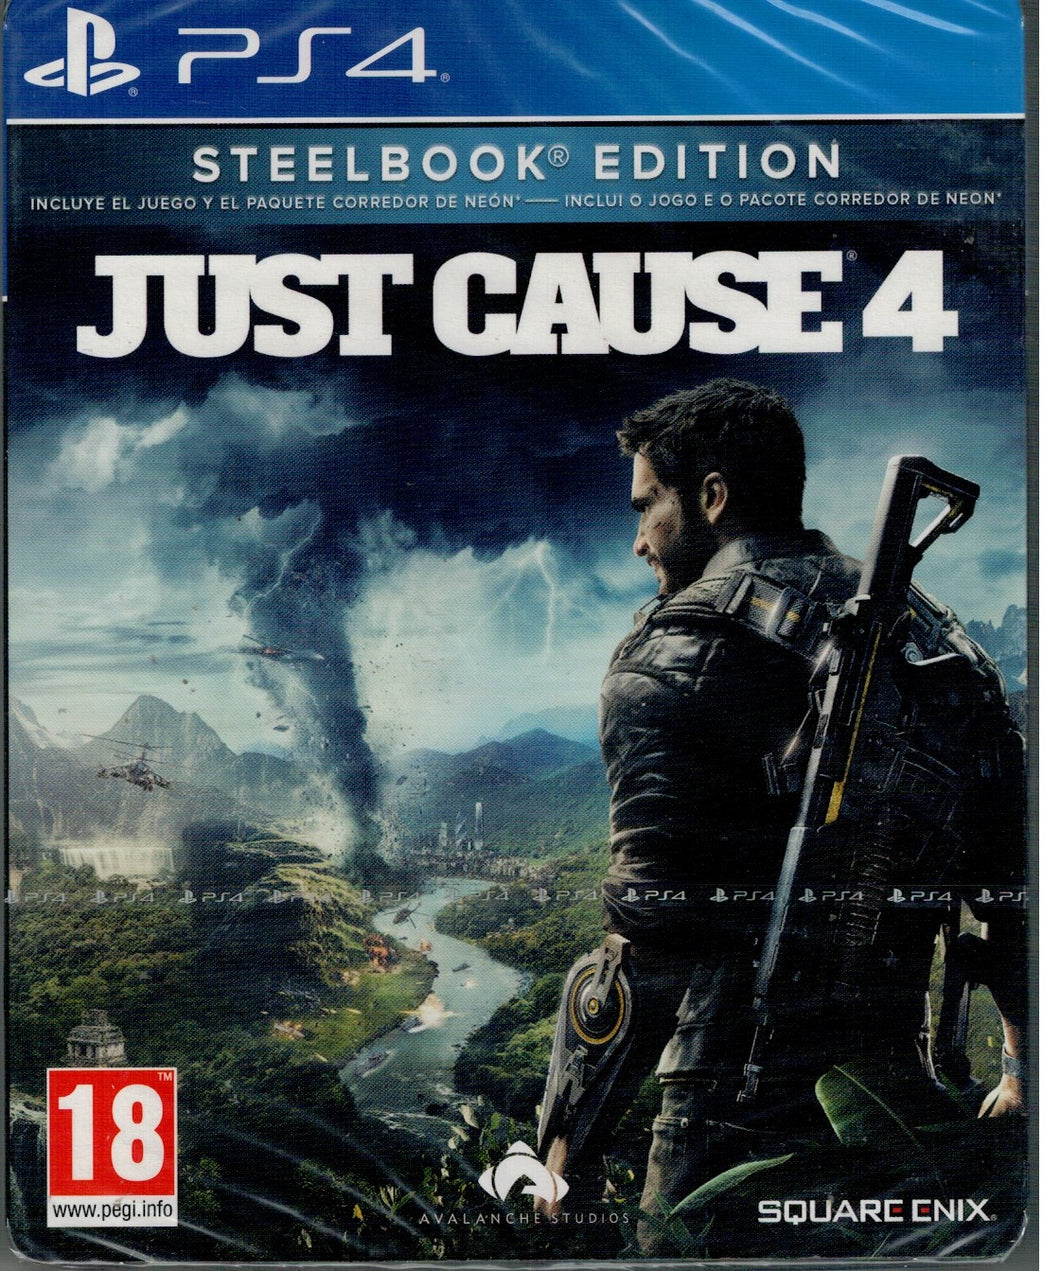 Just Cause 4 - Steelbook Edition  (PS4 Nuevo)